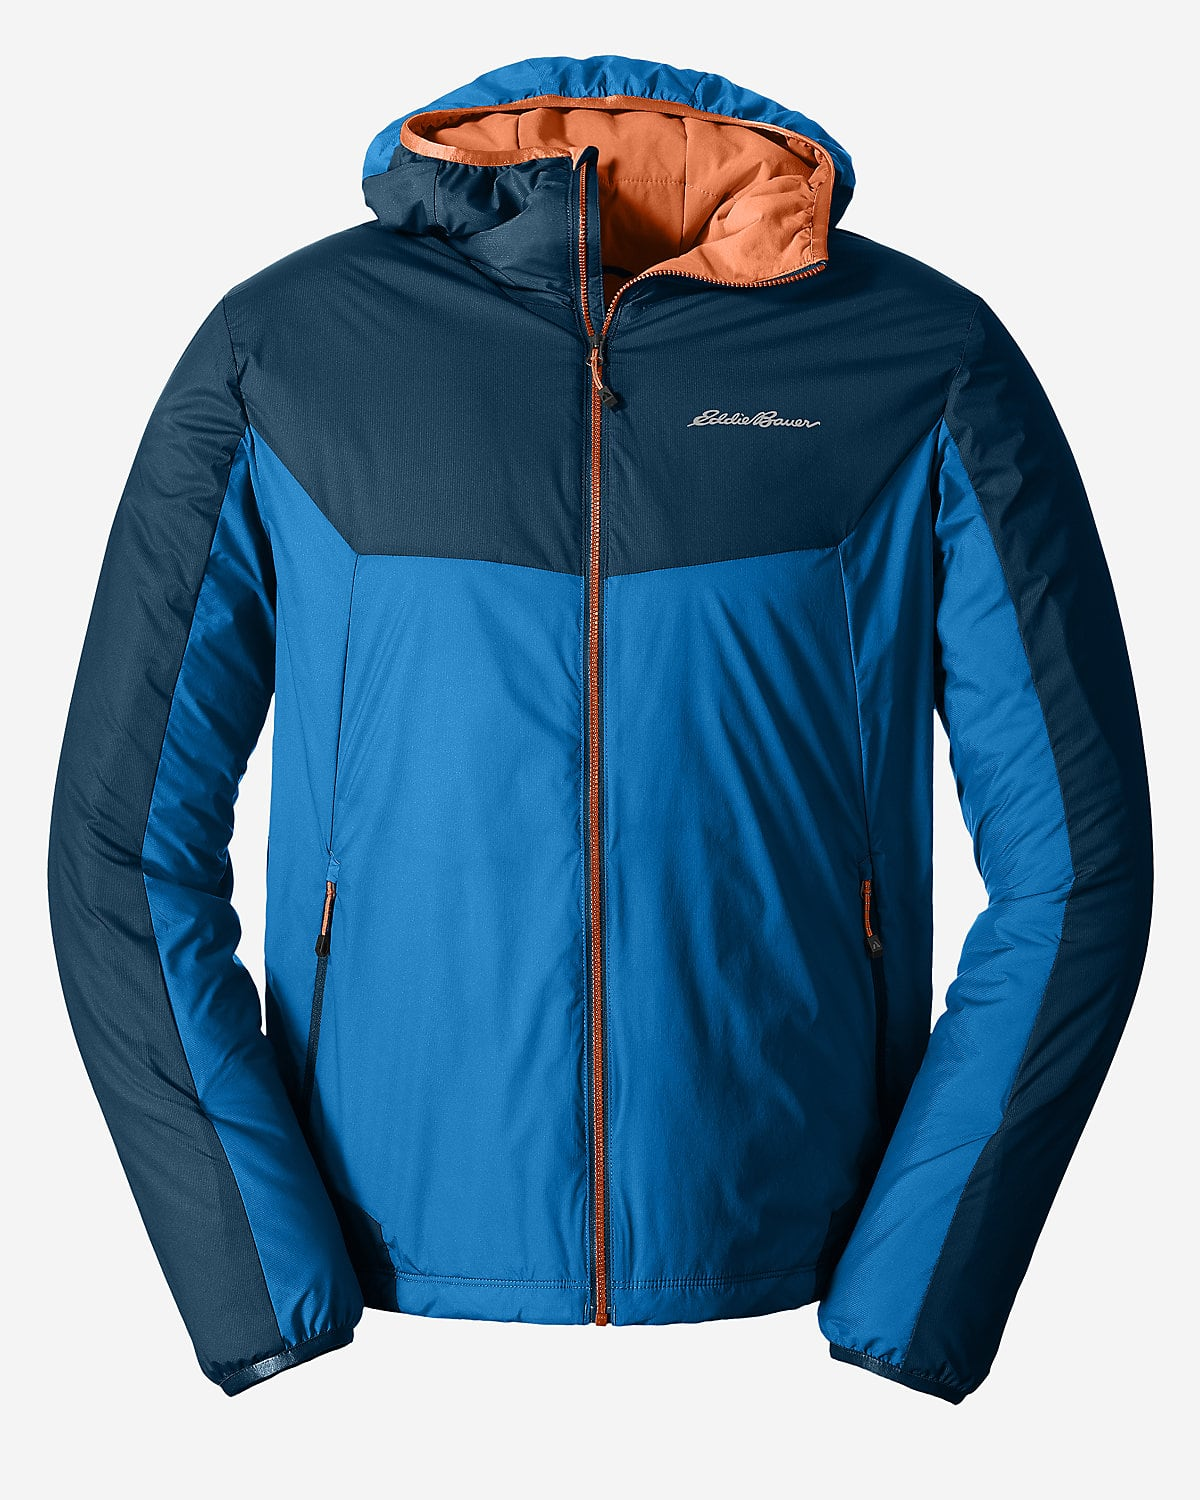 Eddie Bauer Men's IgniteLite Flux 60 Hooded Jacket (various colors)  $60 + Free S&H w/ Shoprunner